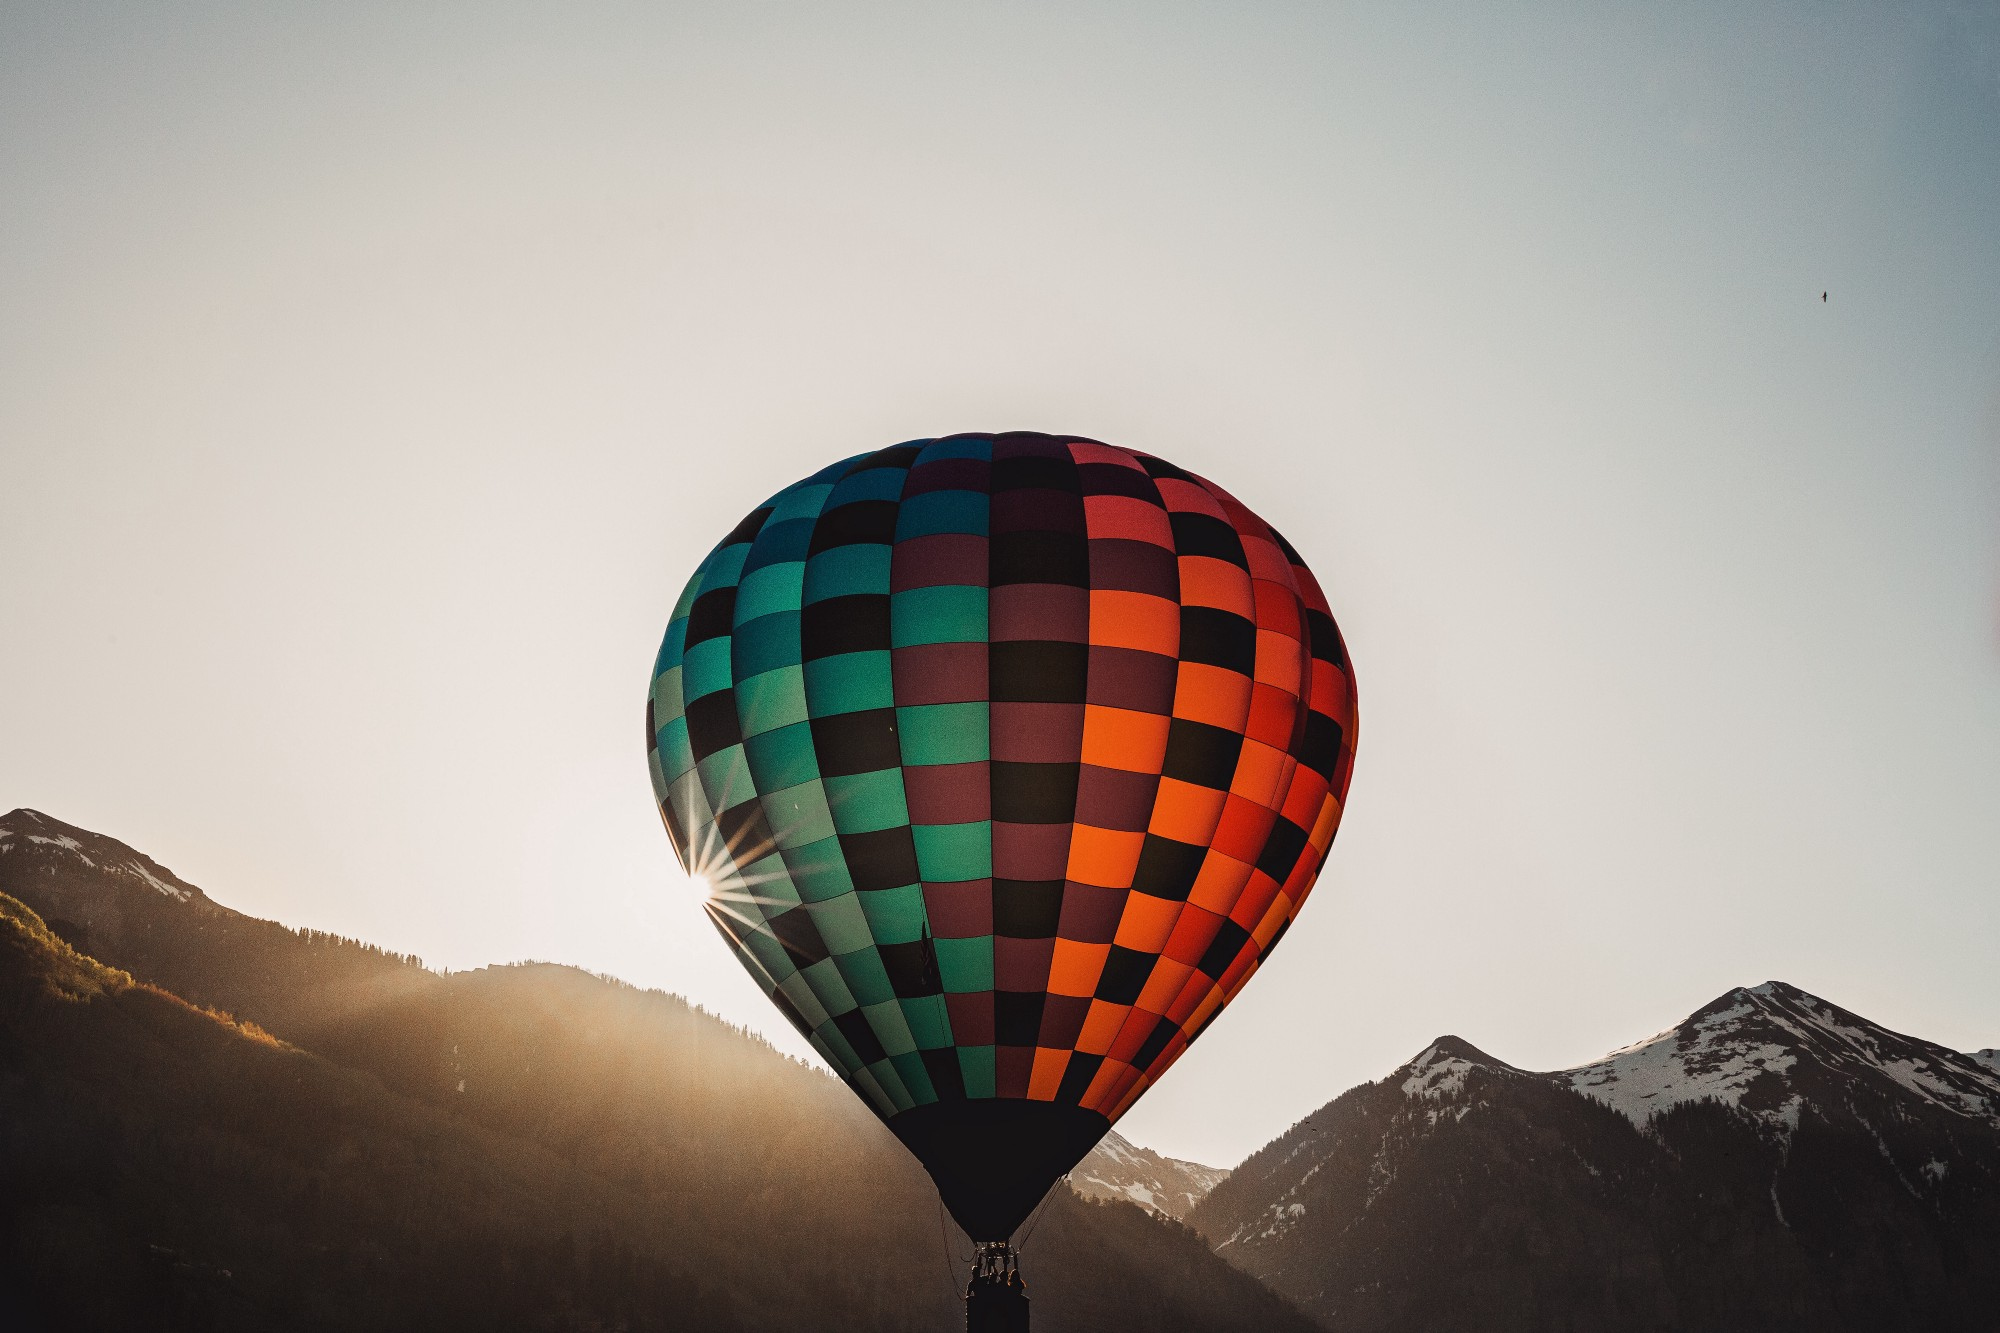 Photo by Thomas Kelley on Unsplash